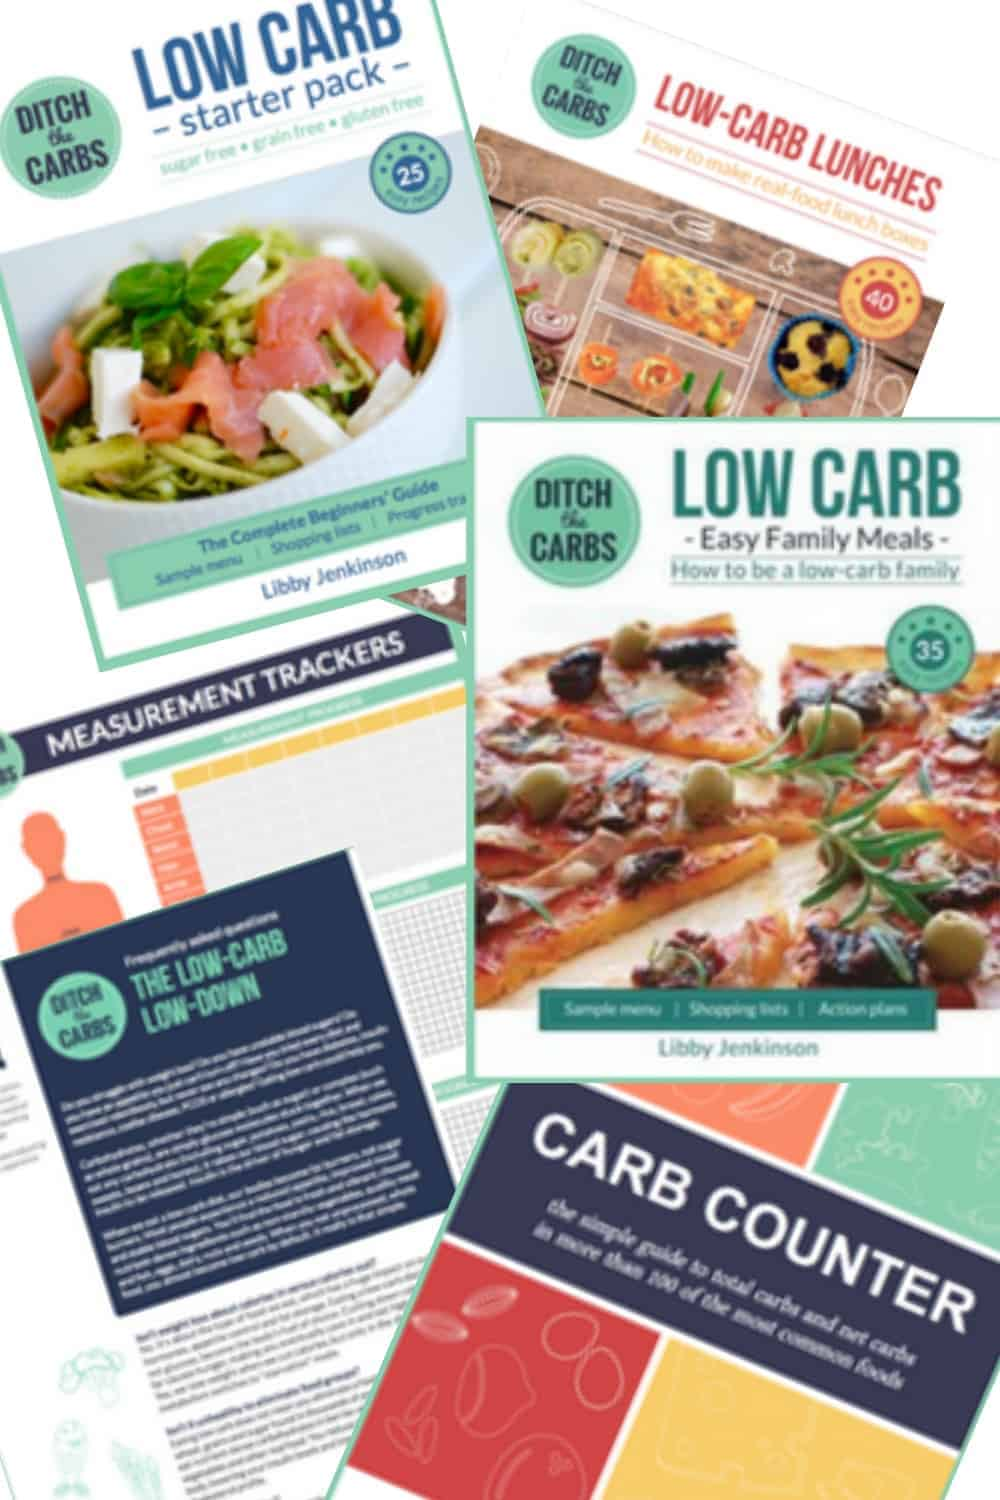 Low Carb starter Bundle